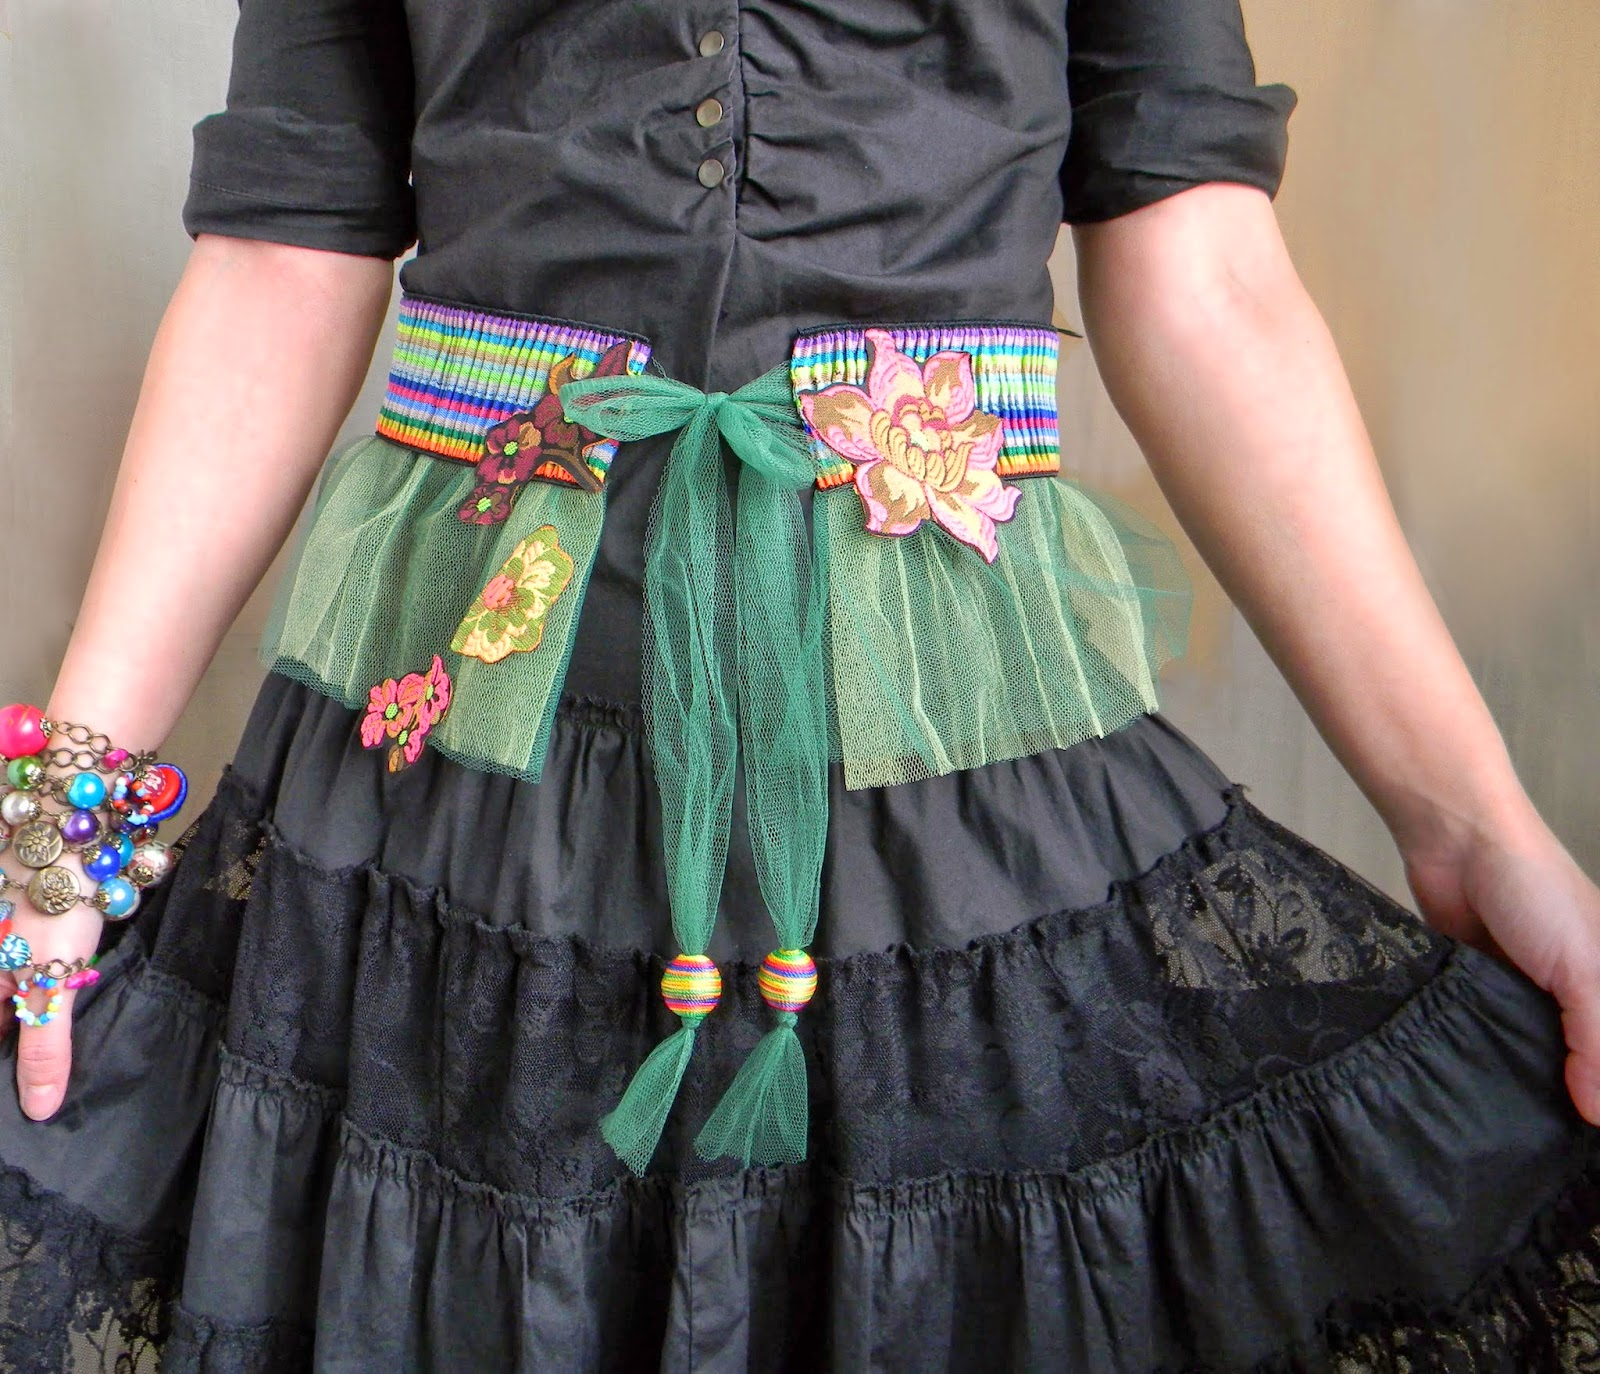 Gypsy Folkloric Waist Belt with Textile Floral Applique